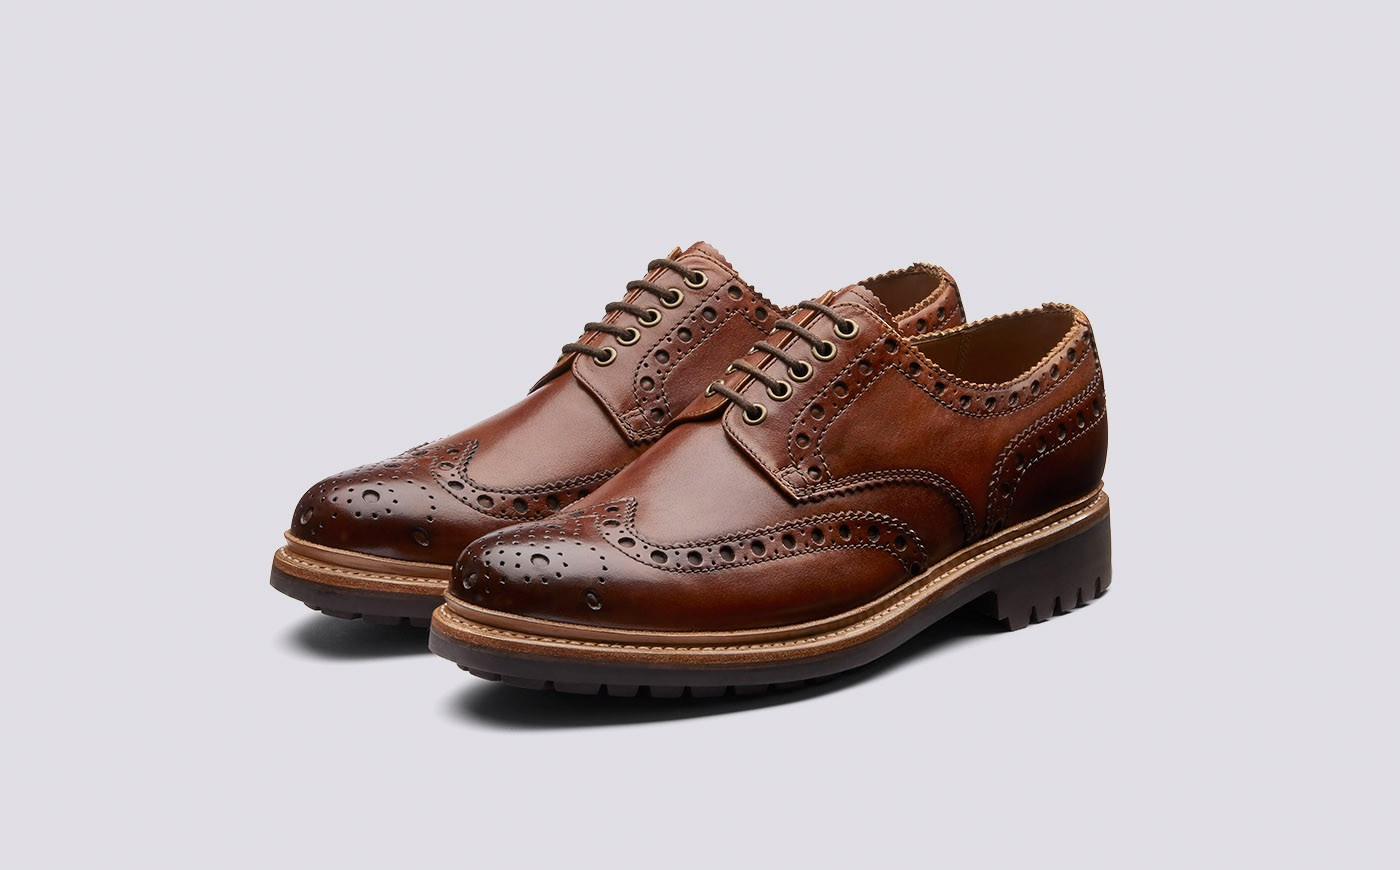 111391_-_archie_tan_hand_painted_calf_leather_-_gibson_brogue_-_commando_sole_-_3_quarter.jpg